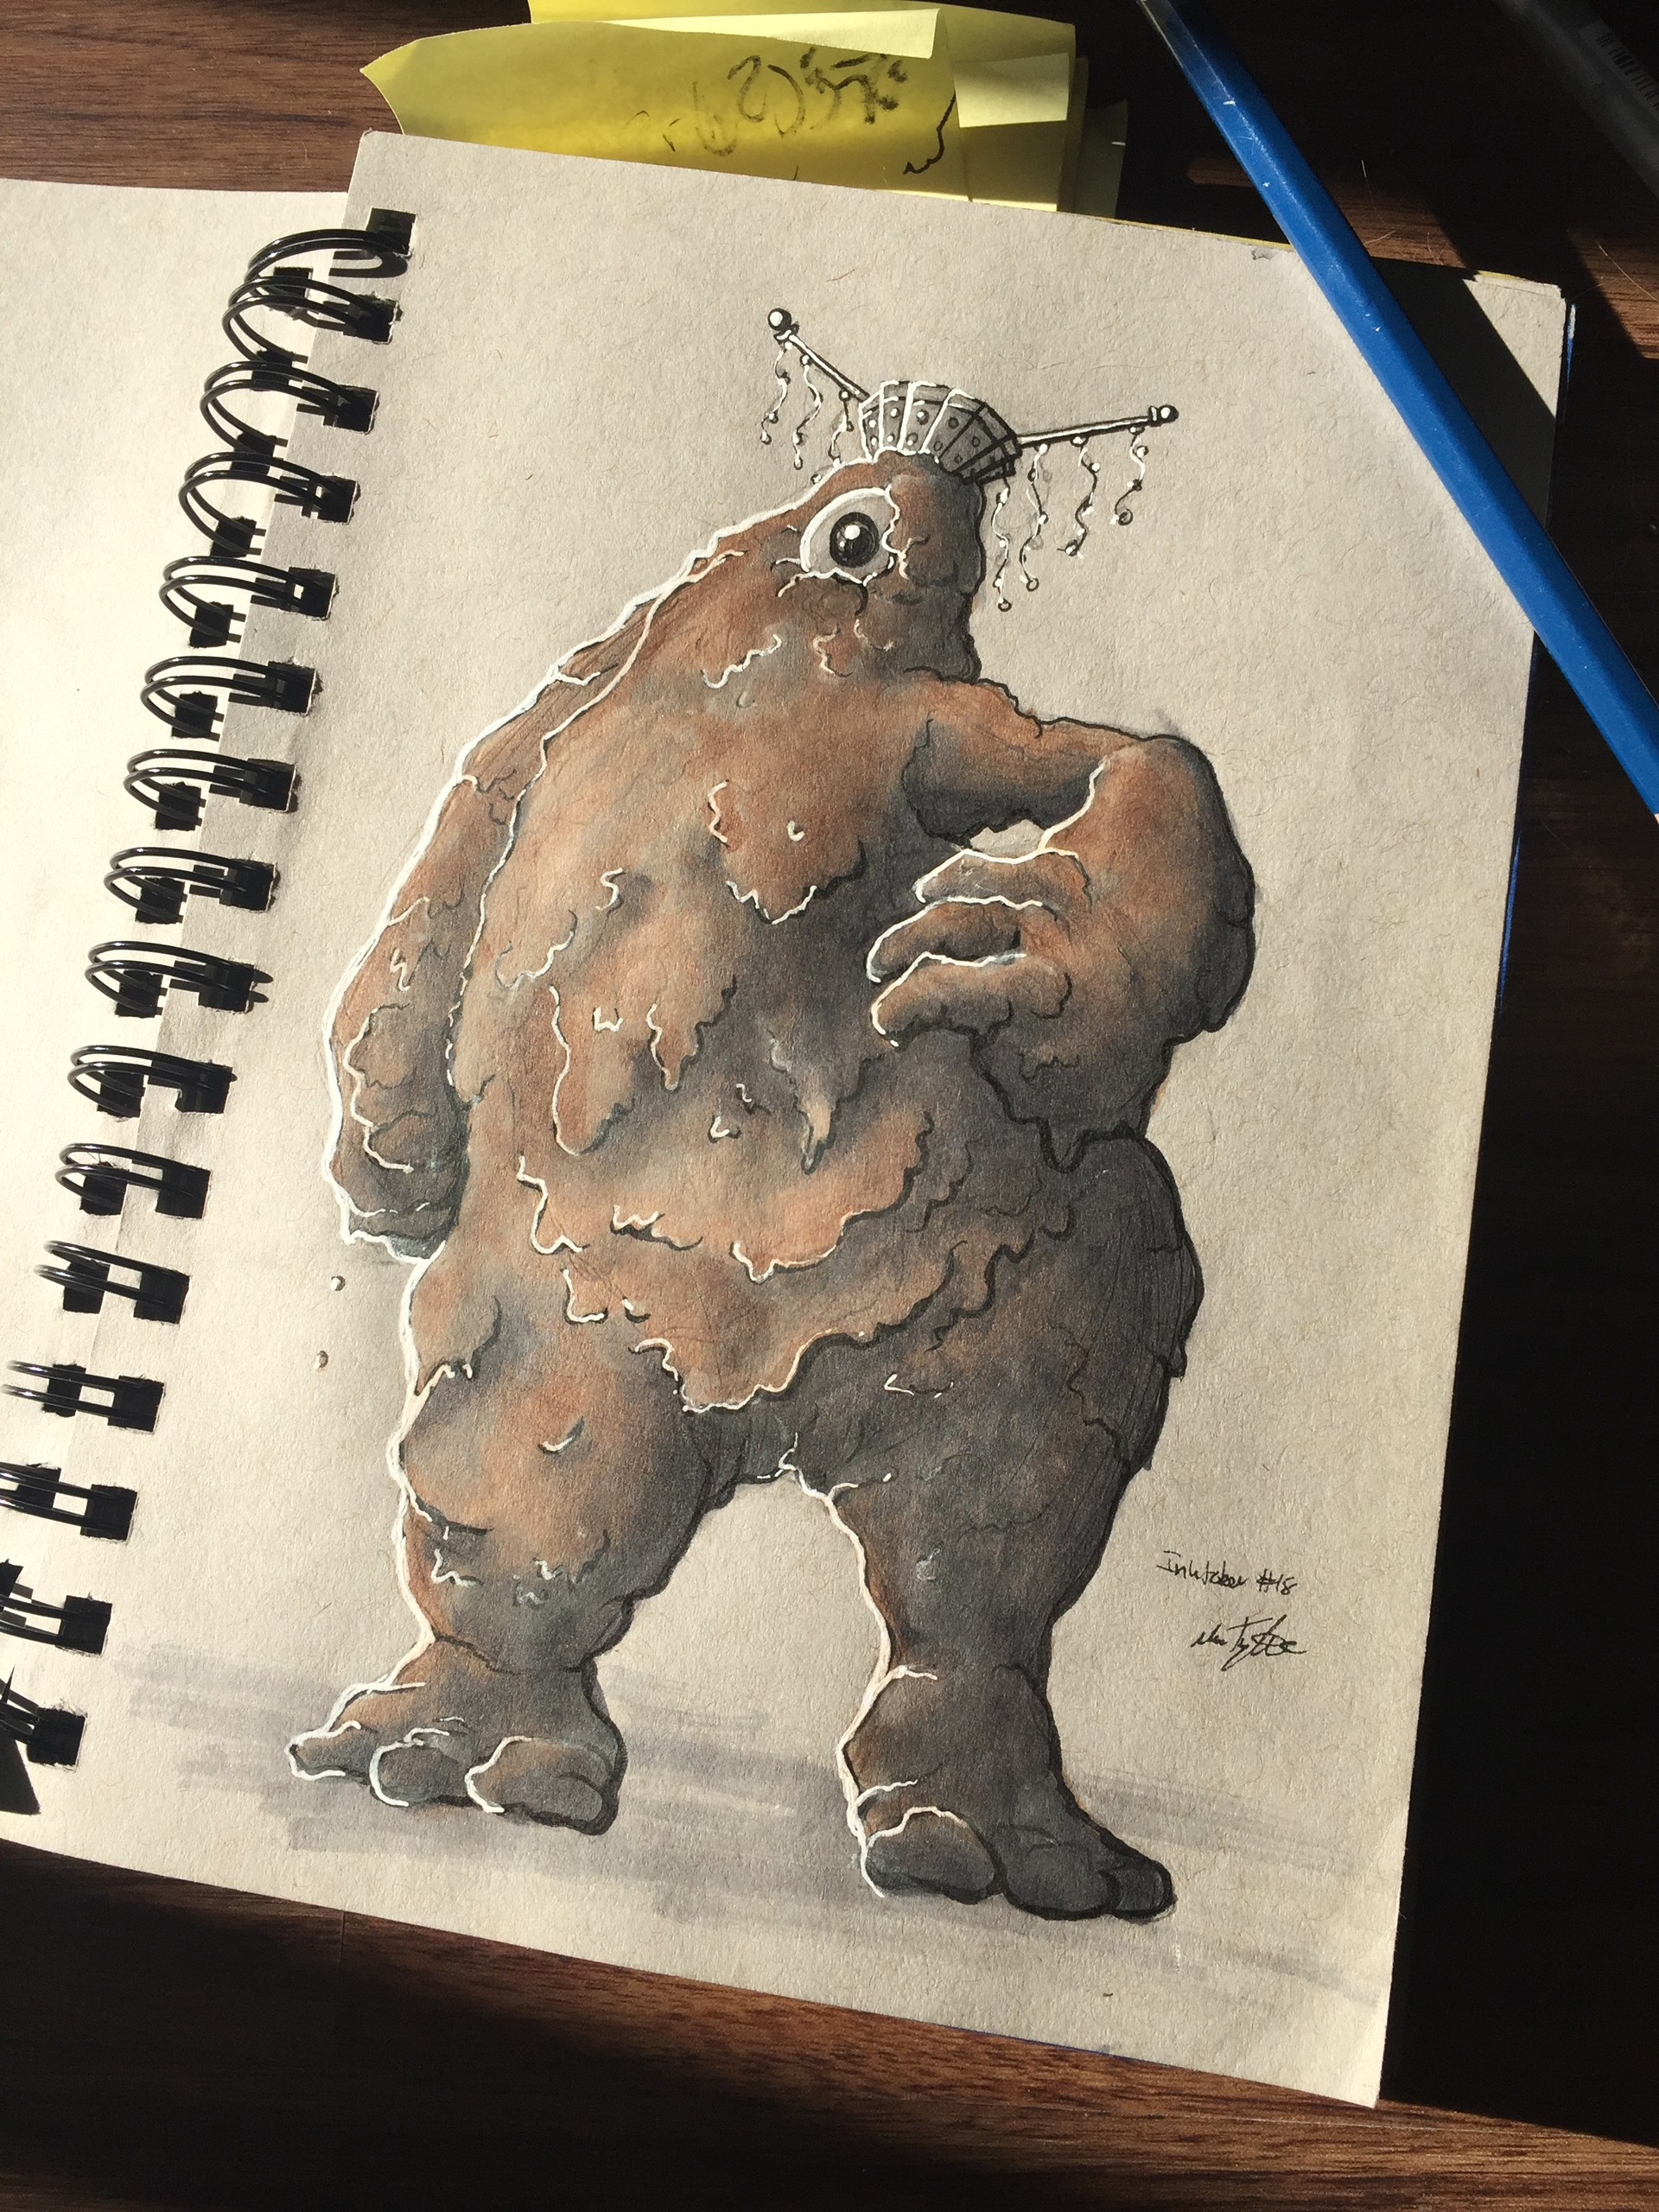 Mud Monster sketch, looking fab.